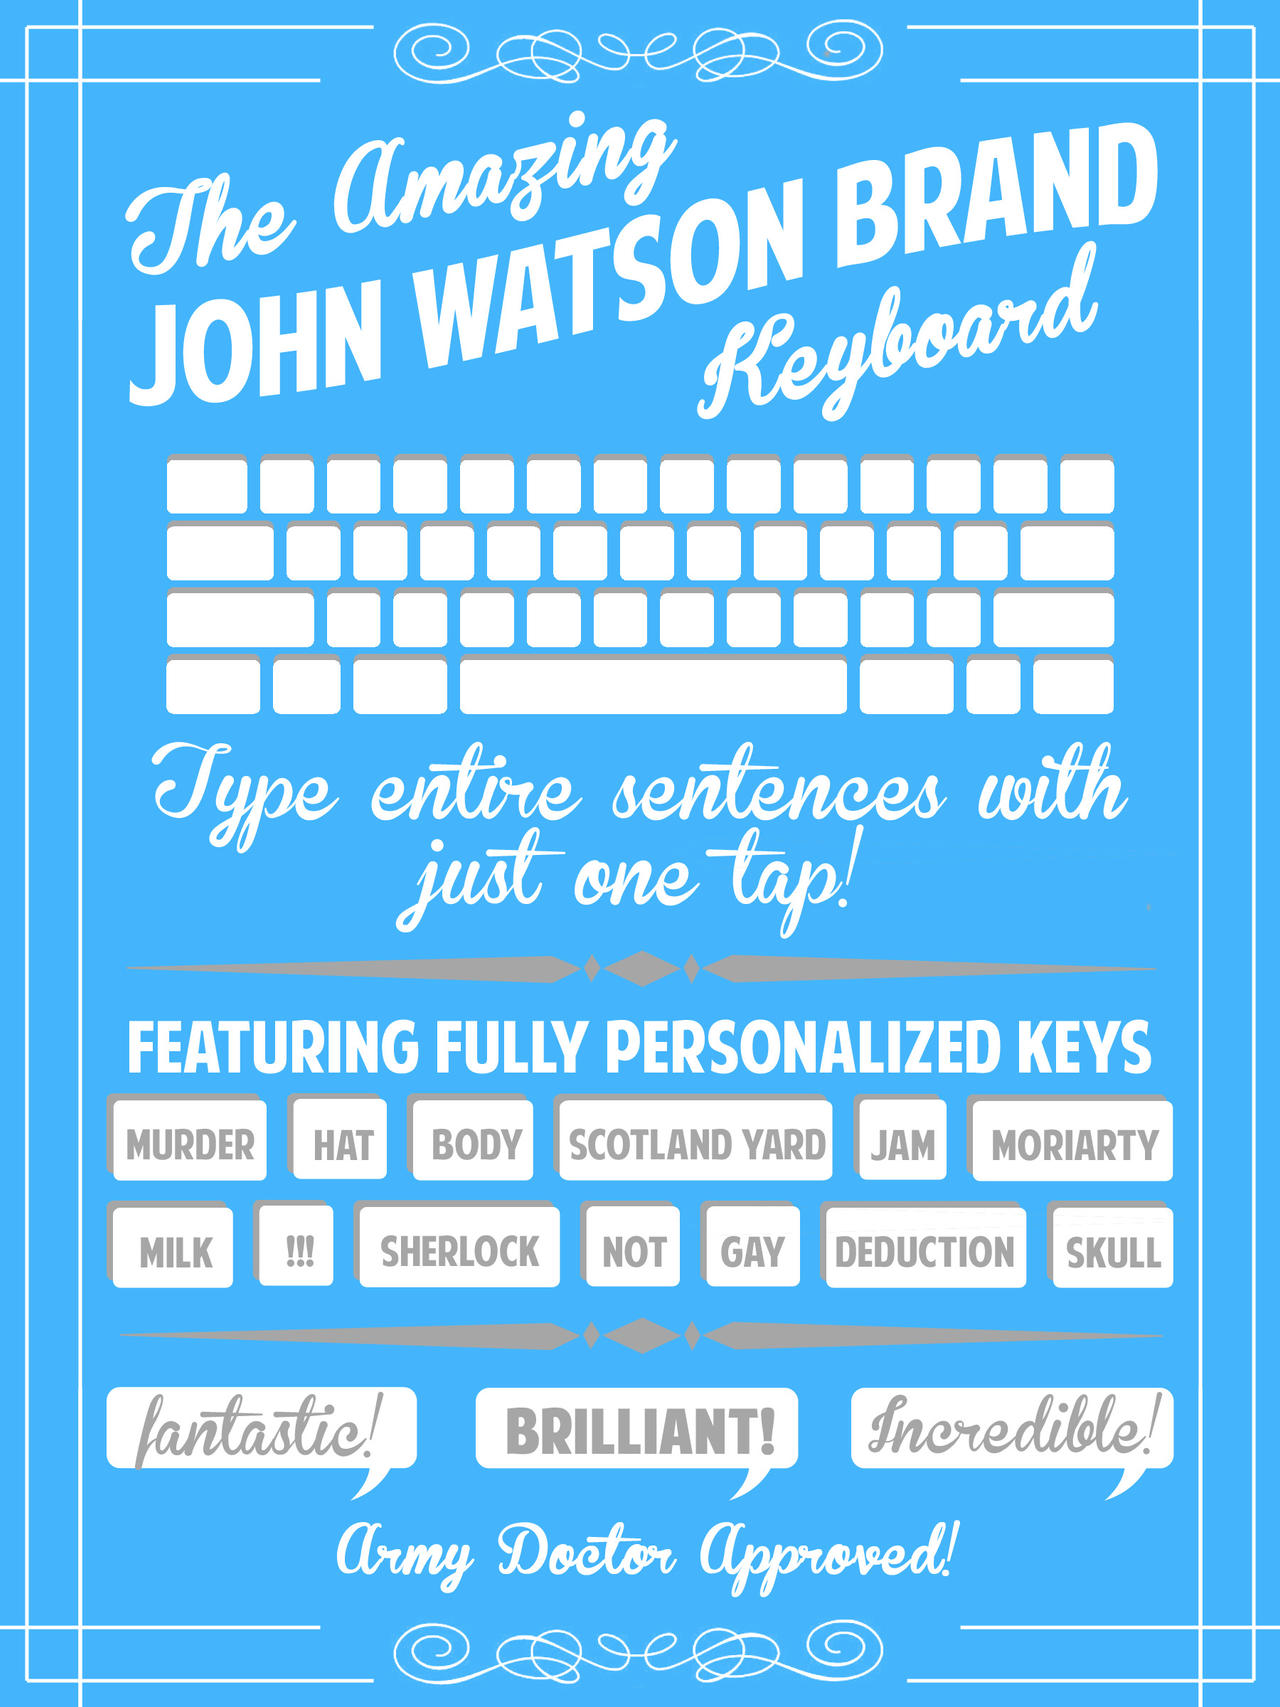 The Amazing John Watson Brand Keyboard by aidanabet